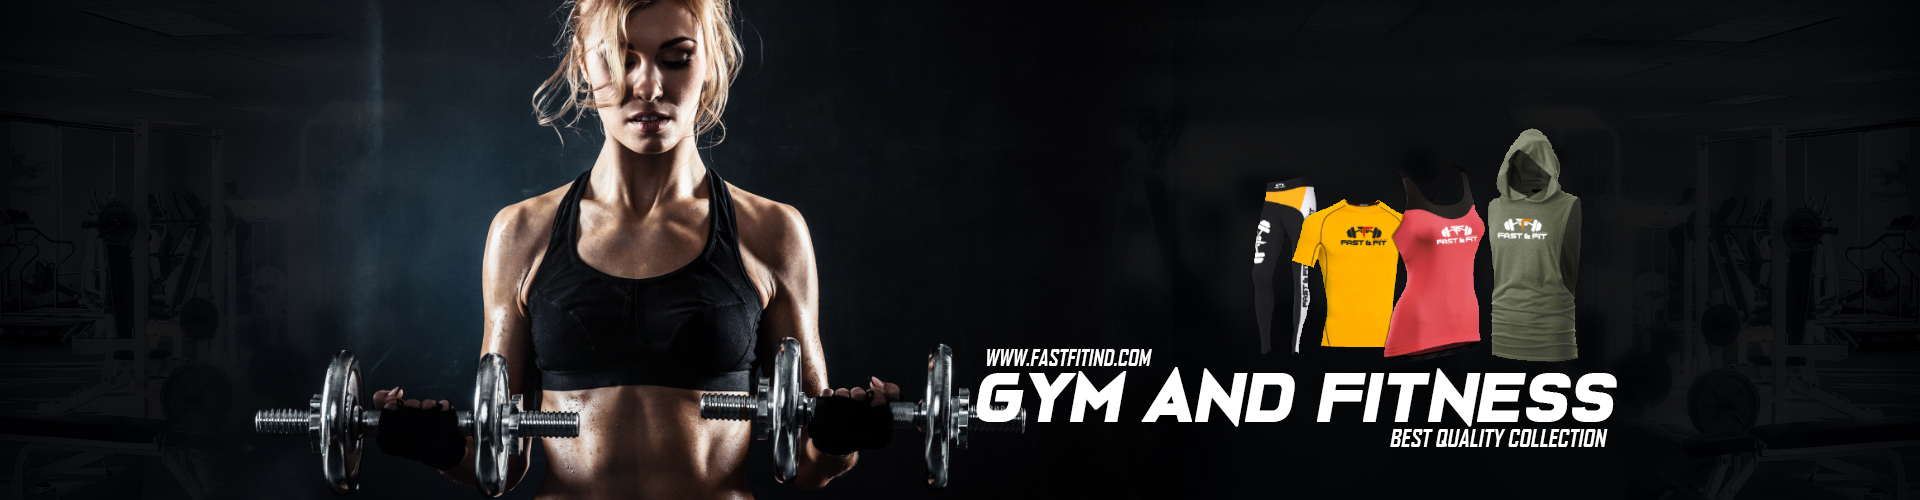 Gym and Fitness2